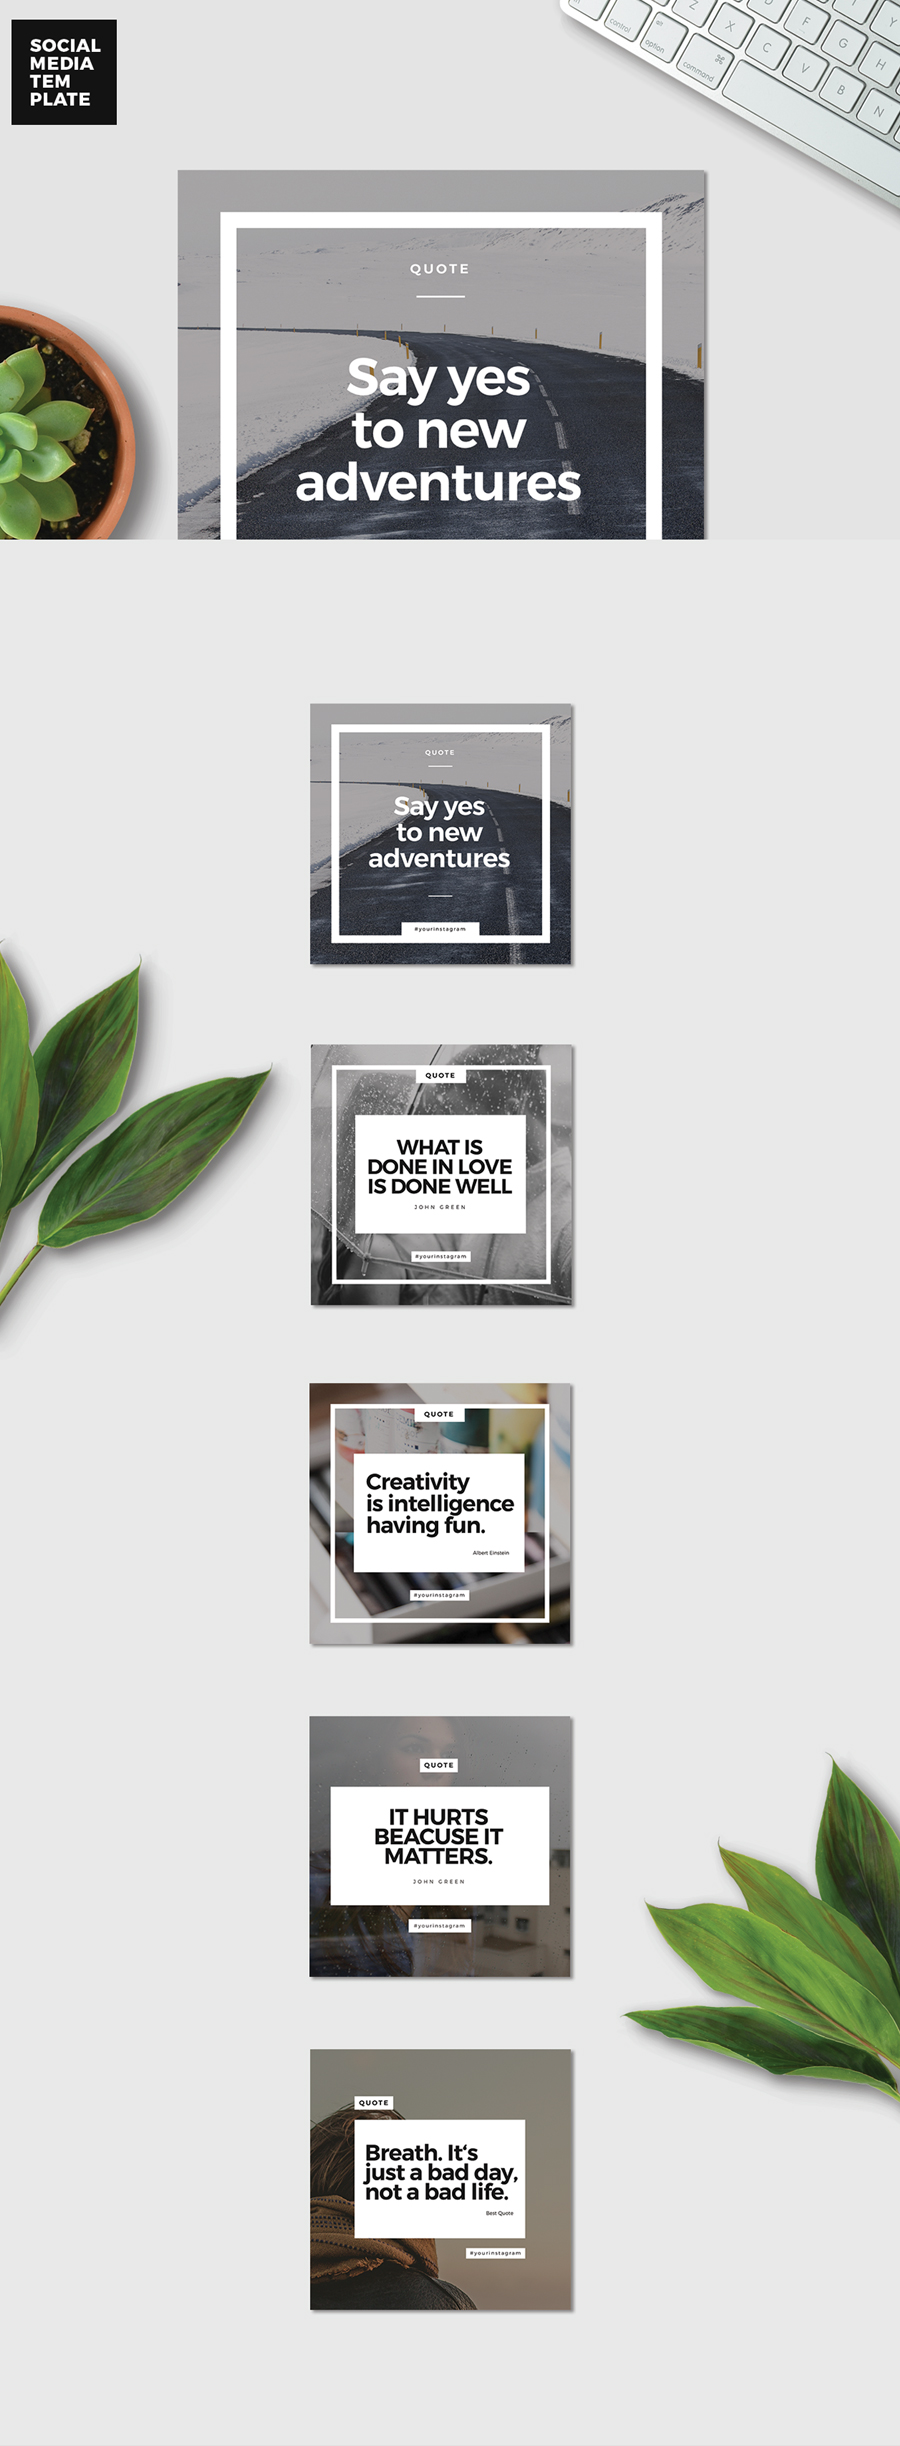 Free 5 Instagram Promotional Templates — Free Design Resources